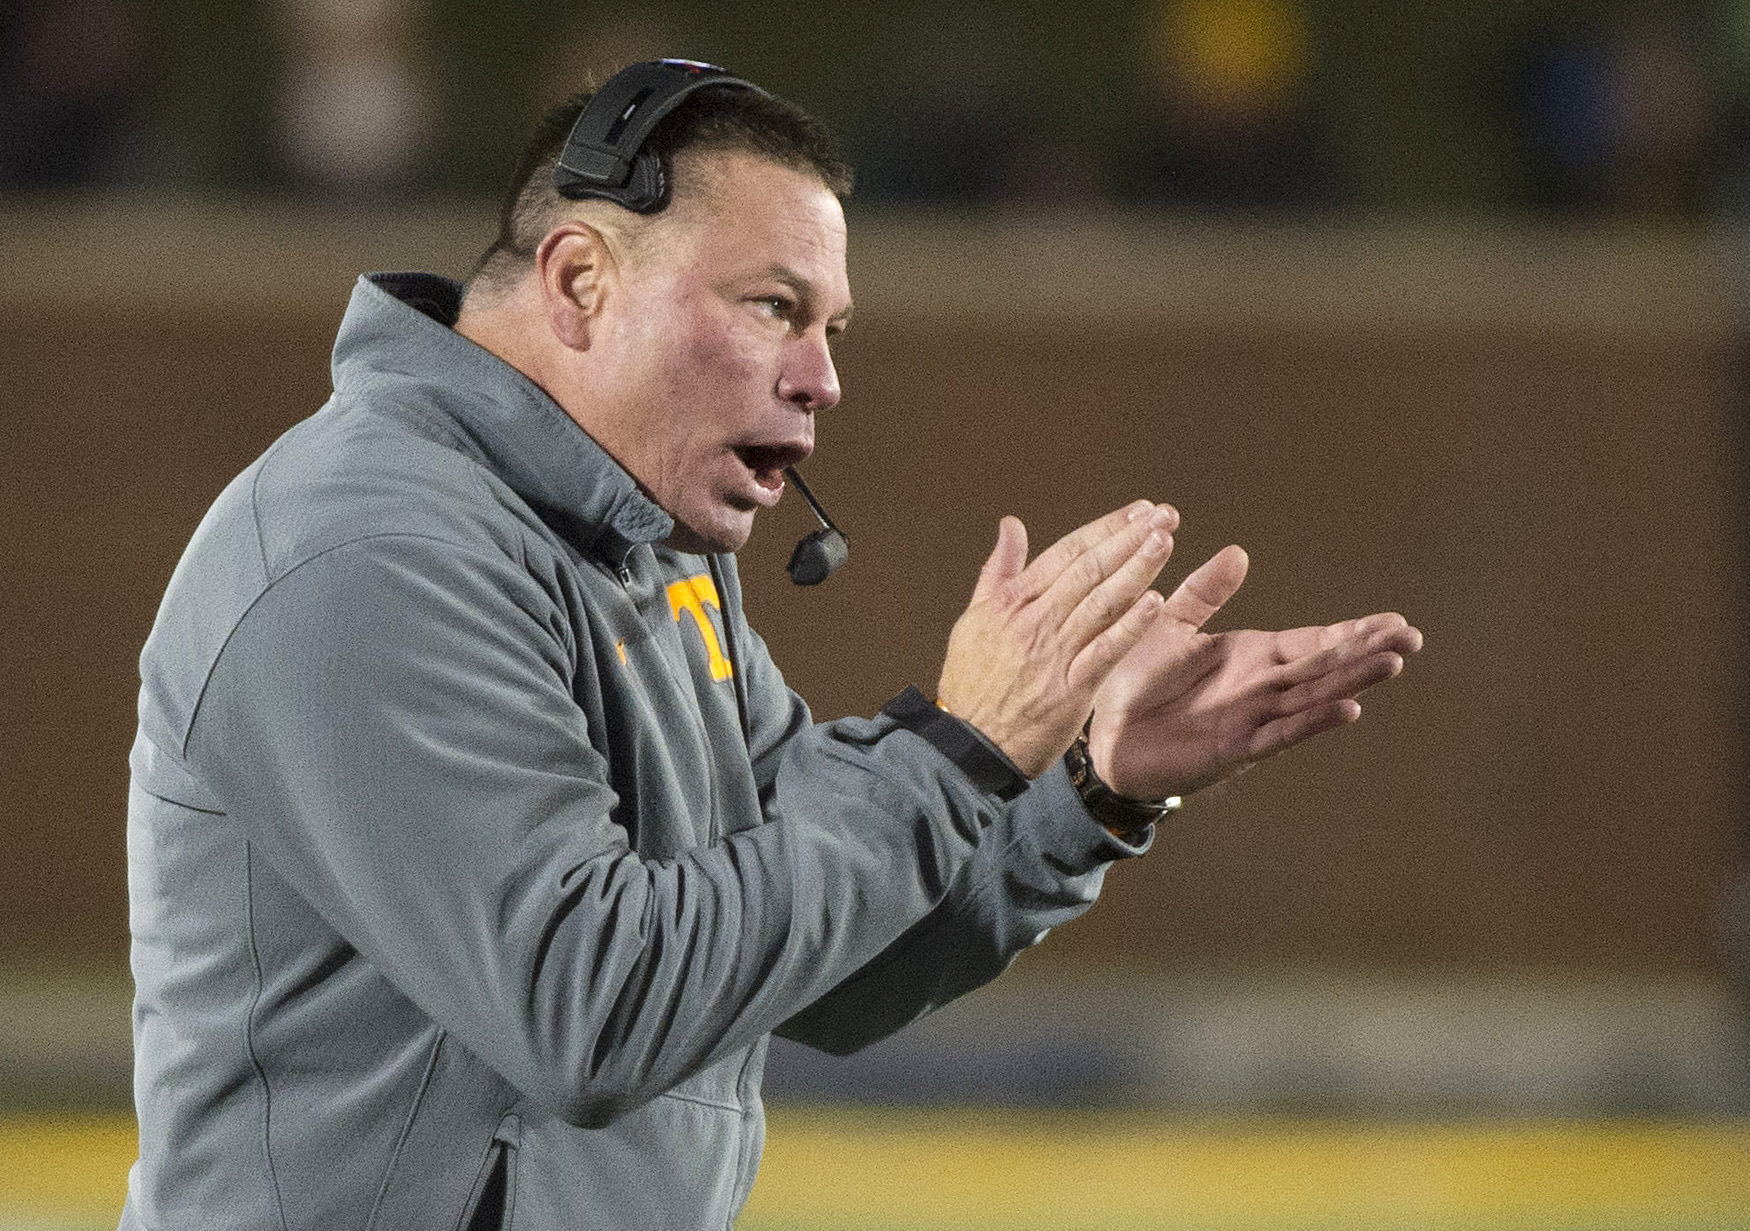 FILE - In this Nov. 21, 2015, file photo, Tennessee head coach Butch Jones encourages his players during the first quarter of an NCAA college football game against Missouri in Columbia, Mo. Under a new NCAA rule change that took effect last week, athletic